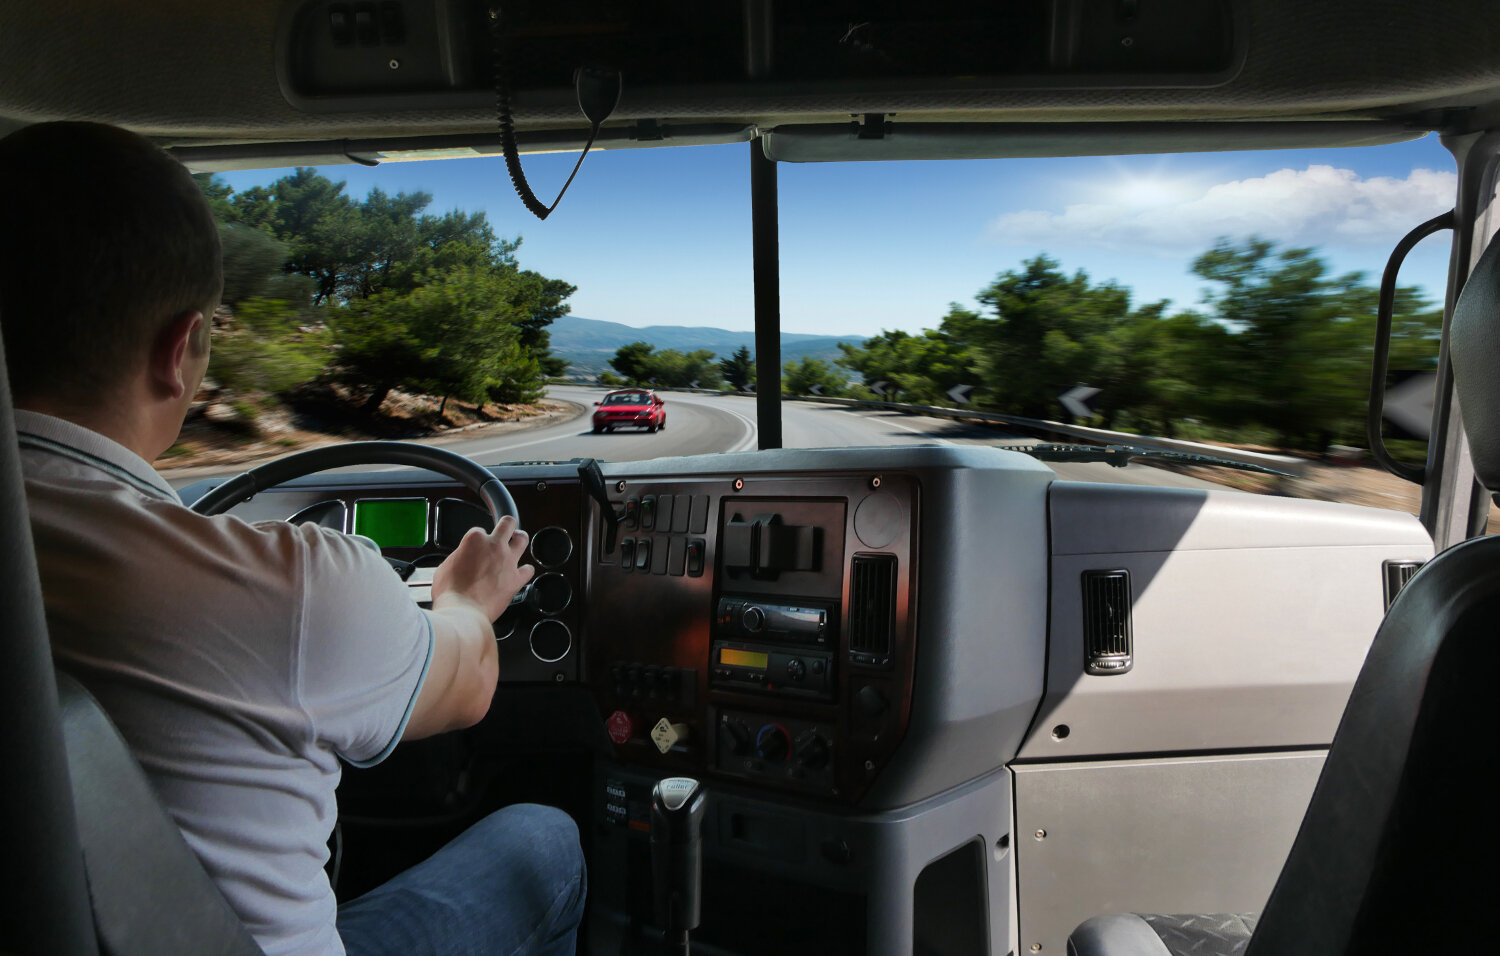 While the COVID-19 crisis has affected the country in deeply profound ways, it has also highlight deficiencies in the current regulatory framework for freight movement. (Photo: Shutterstock)